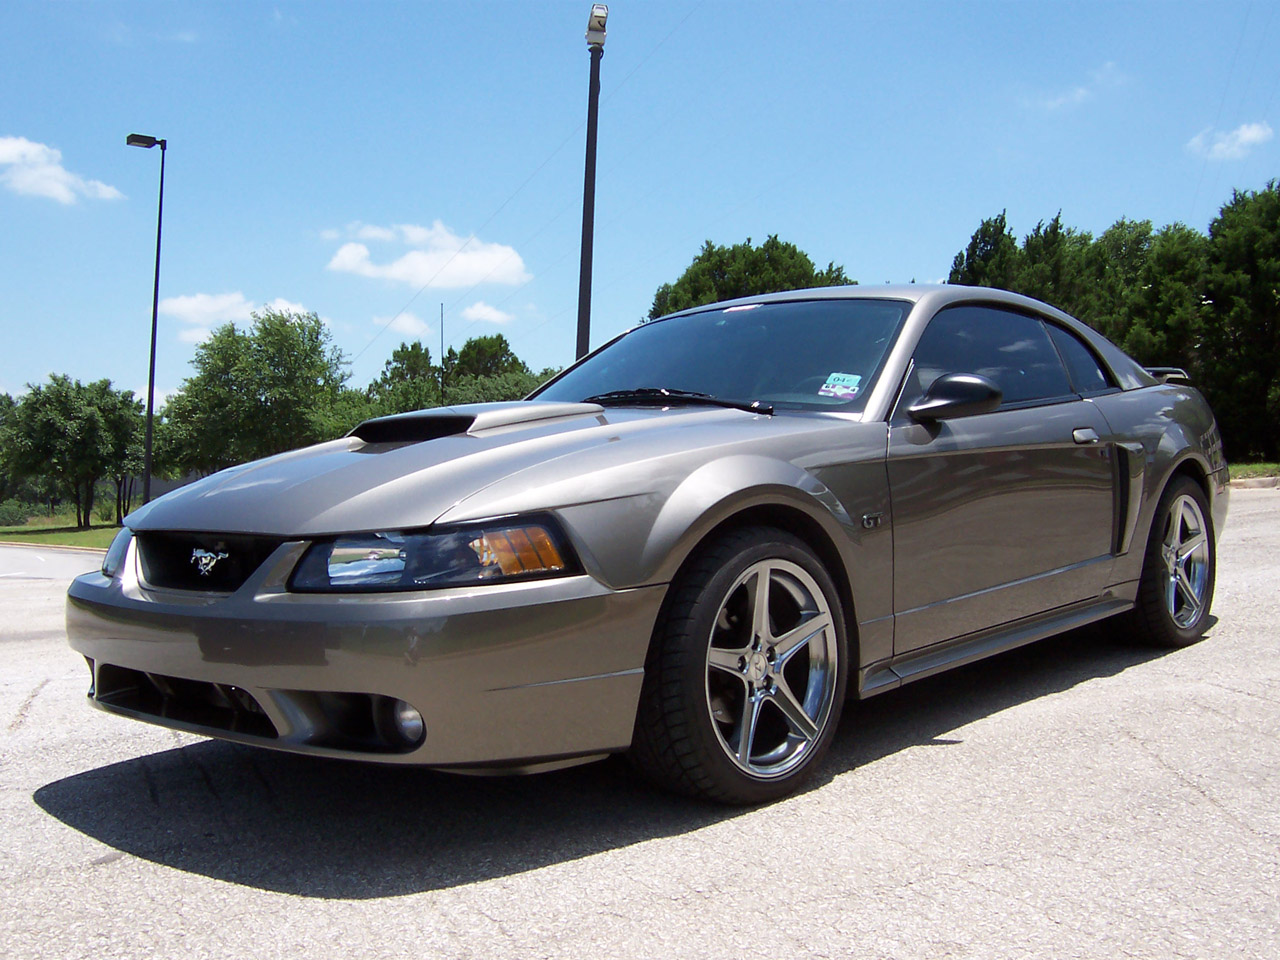 2002 ford mustang image 12